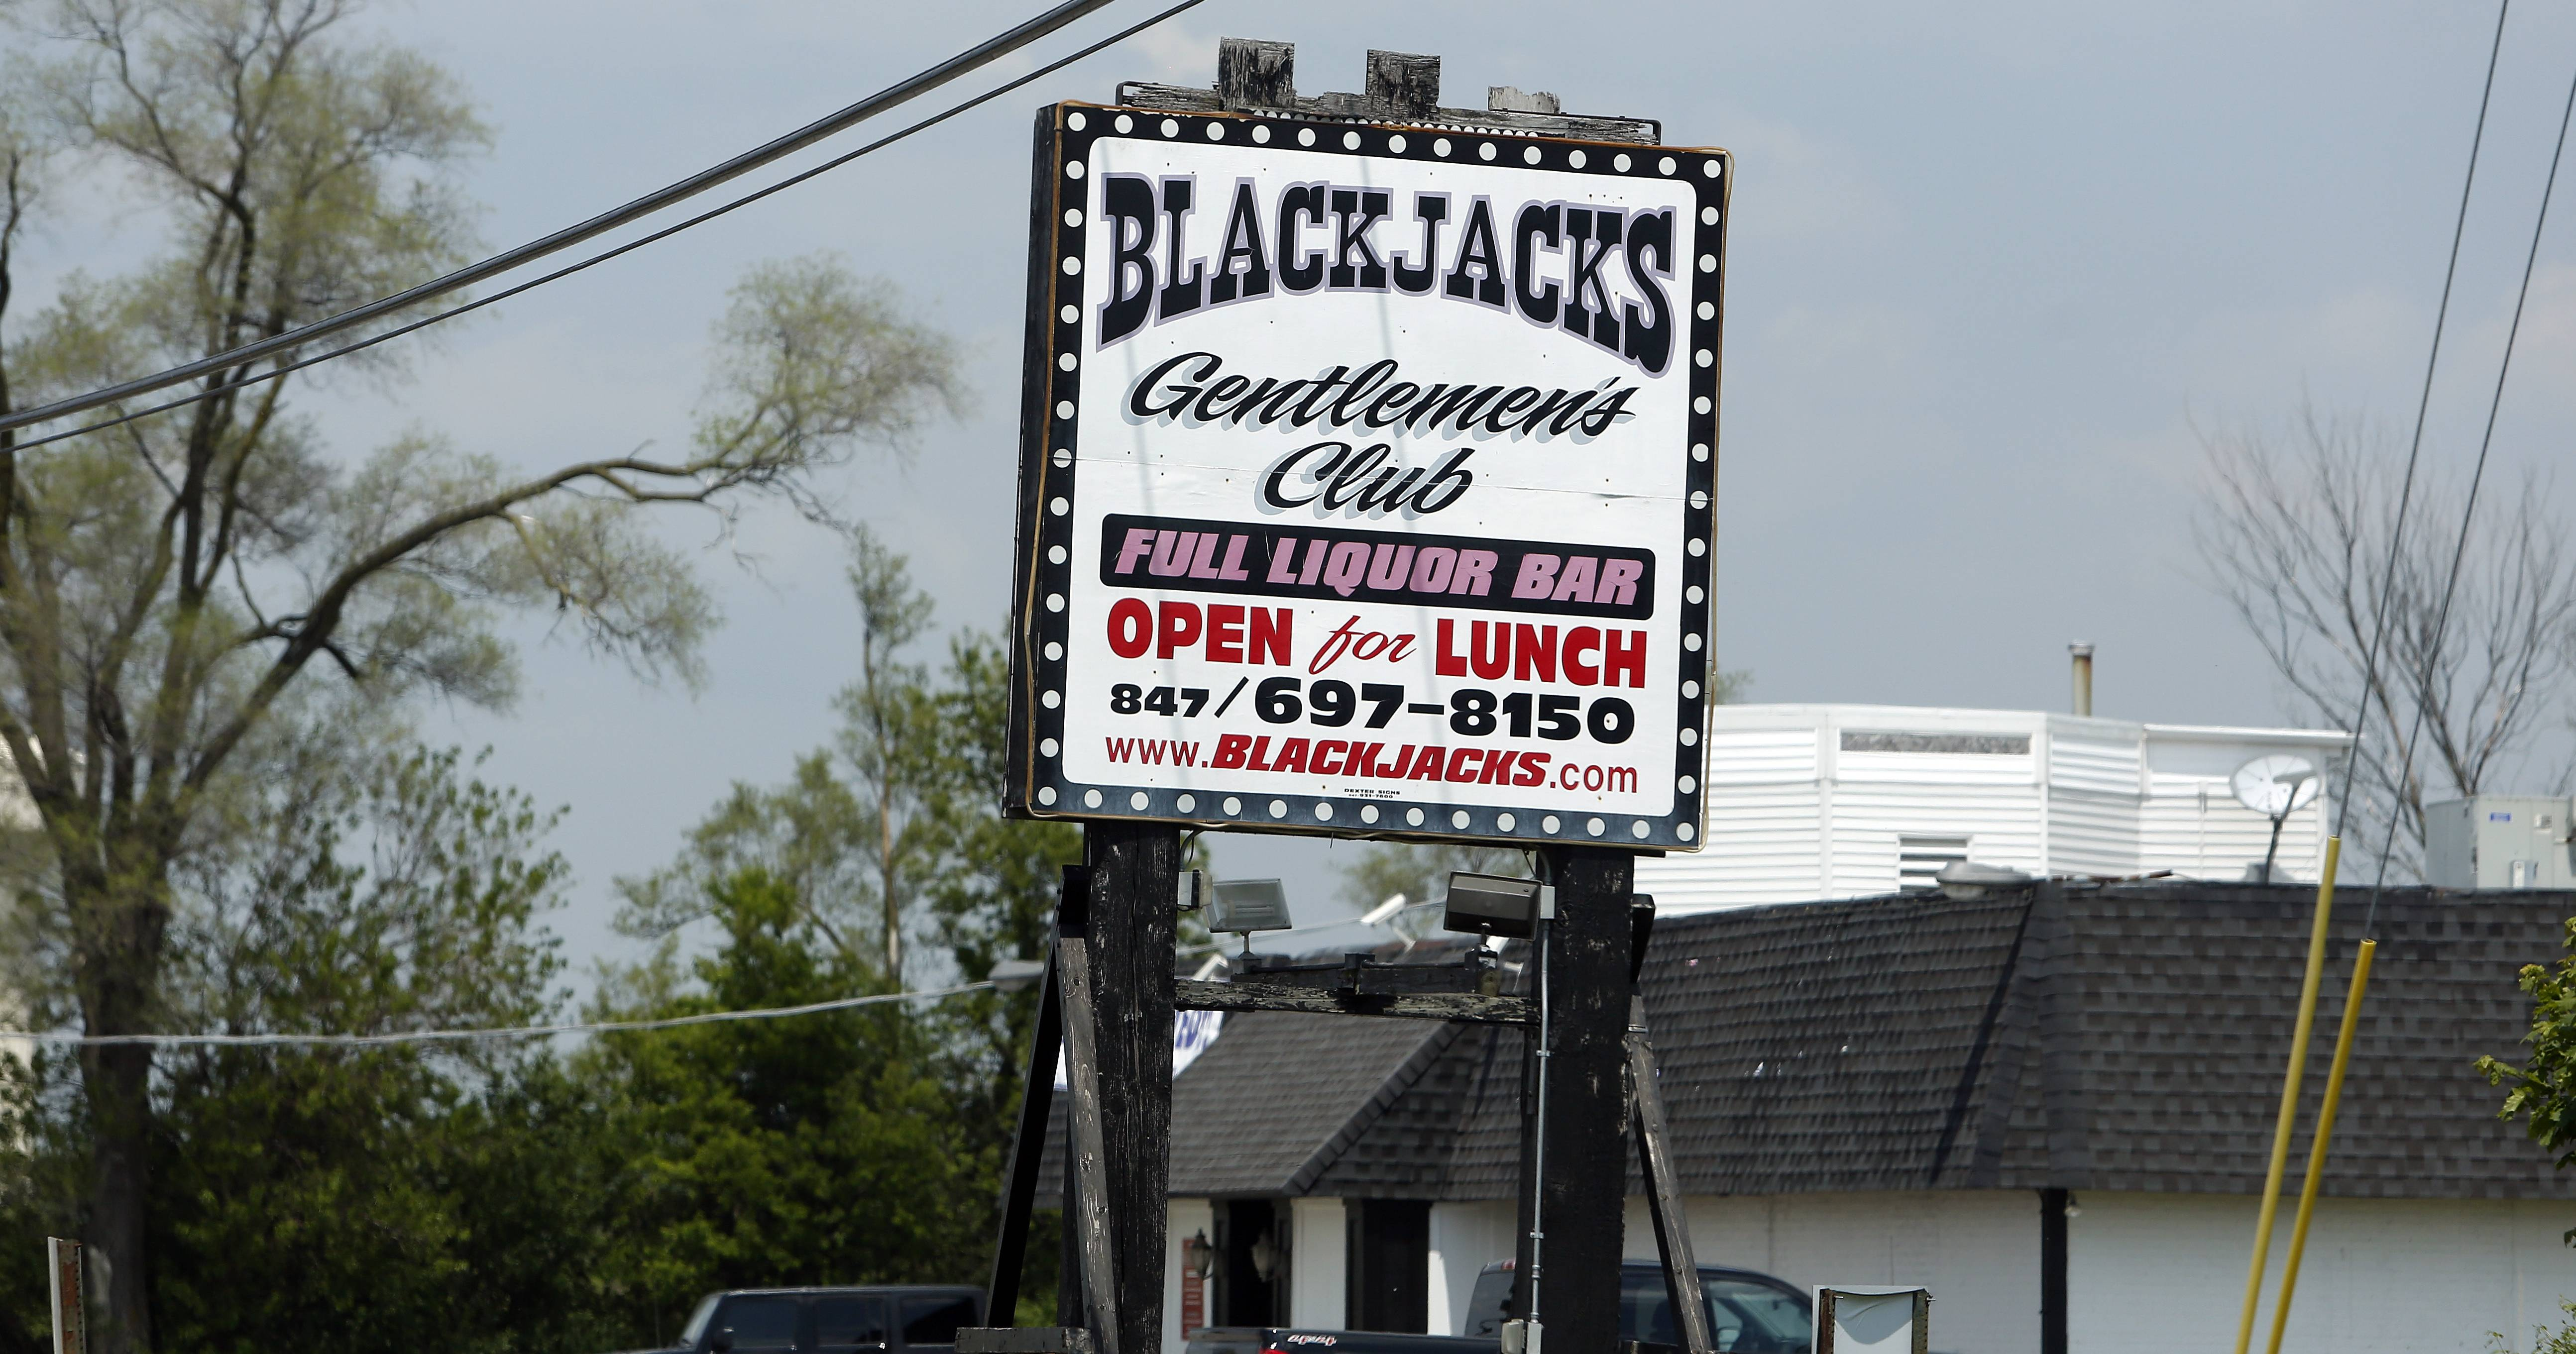 Despite the sign, Blackjacks lost its liquor license in 2012 when its owners went to prison. But that gives it more flexibility on hours and nudity.